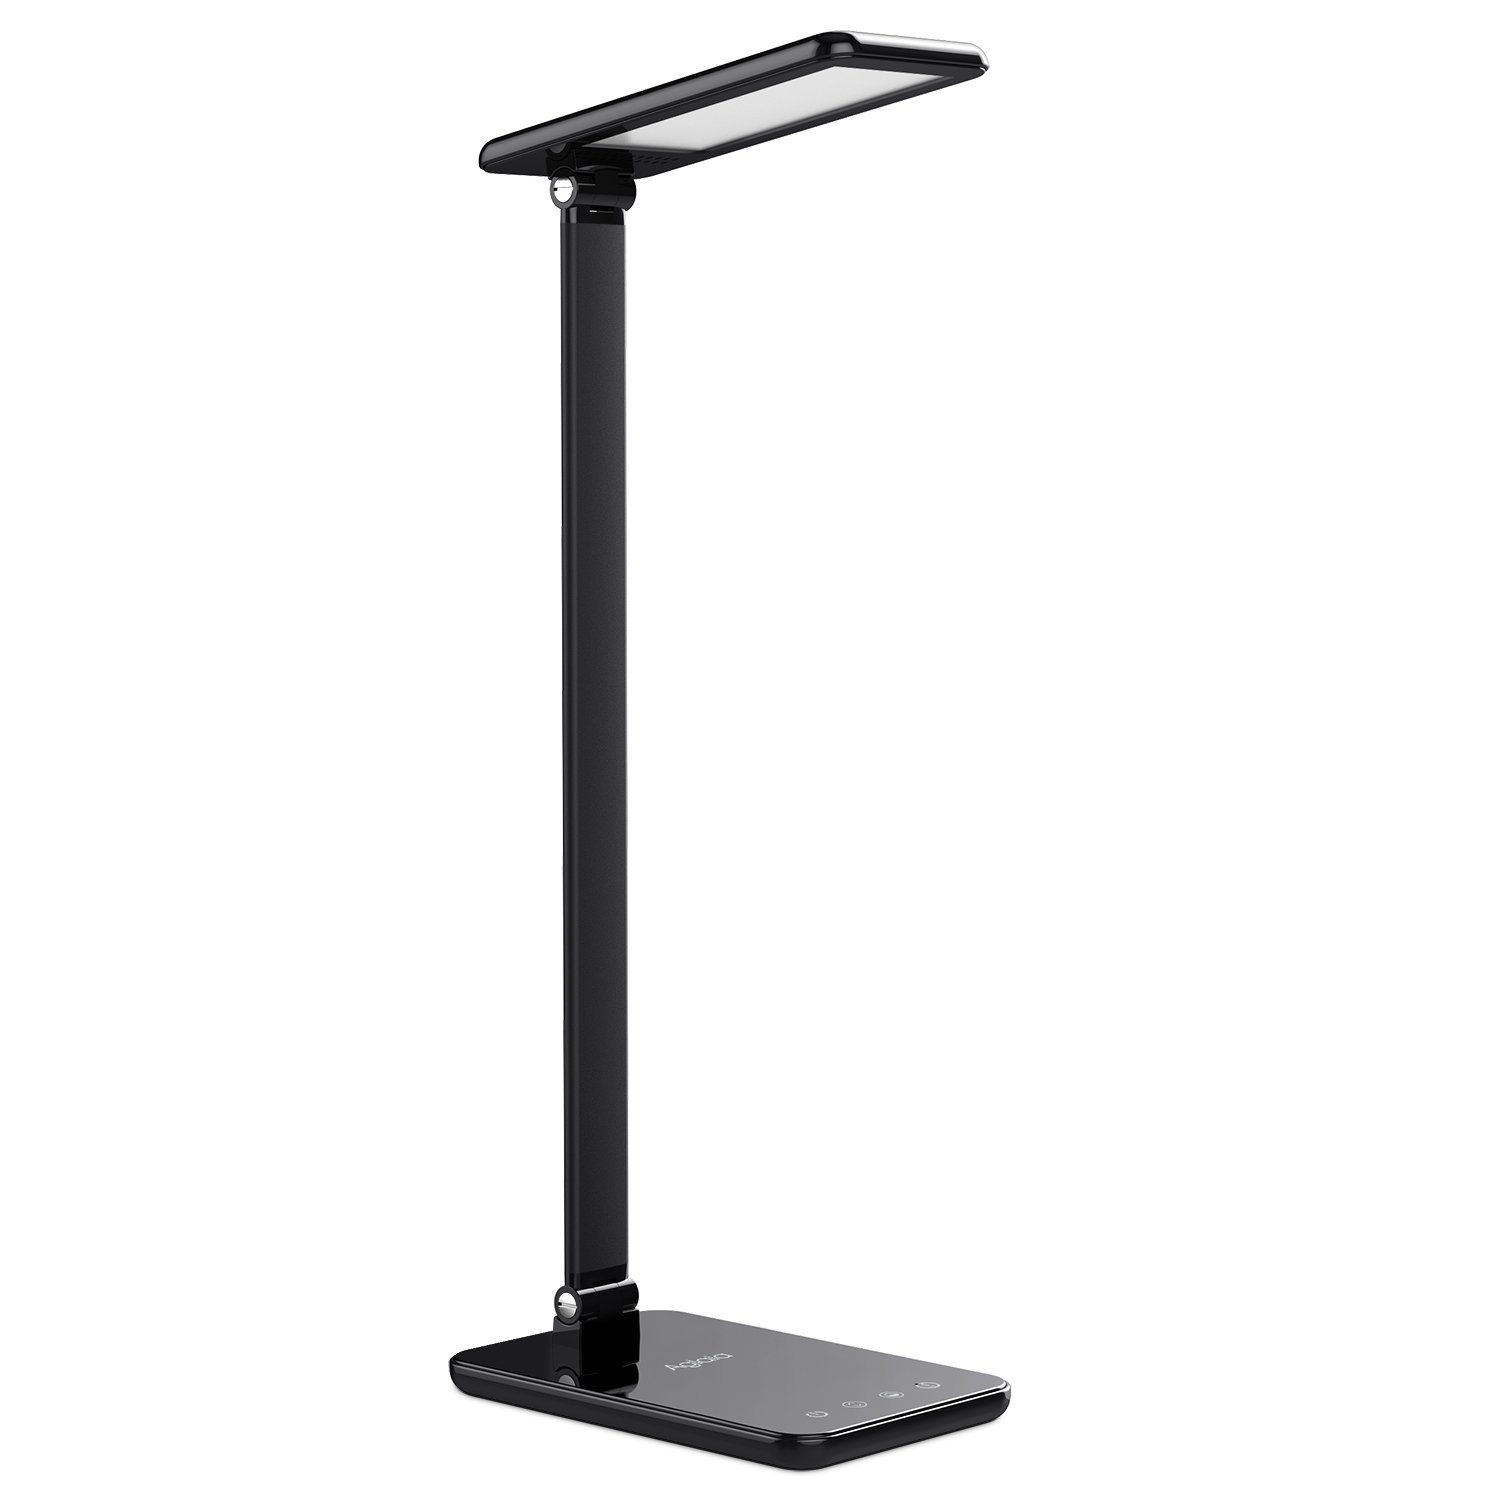 LED Desk Lamp 8W, Aglaia Eye-Caring Table Lamps with Dimmable Touch Control, Stepless Brightness Levels and Lighting Modes, Aluminum Alloy ARM, 1-Hour Auto Timer, Memory Function